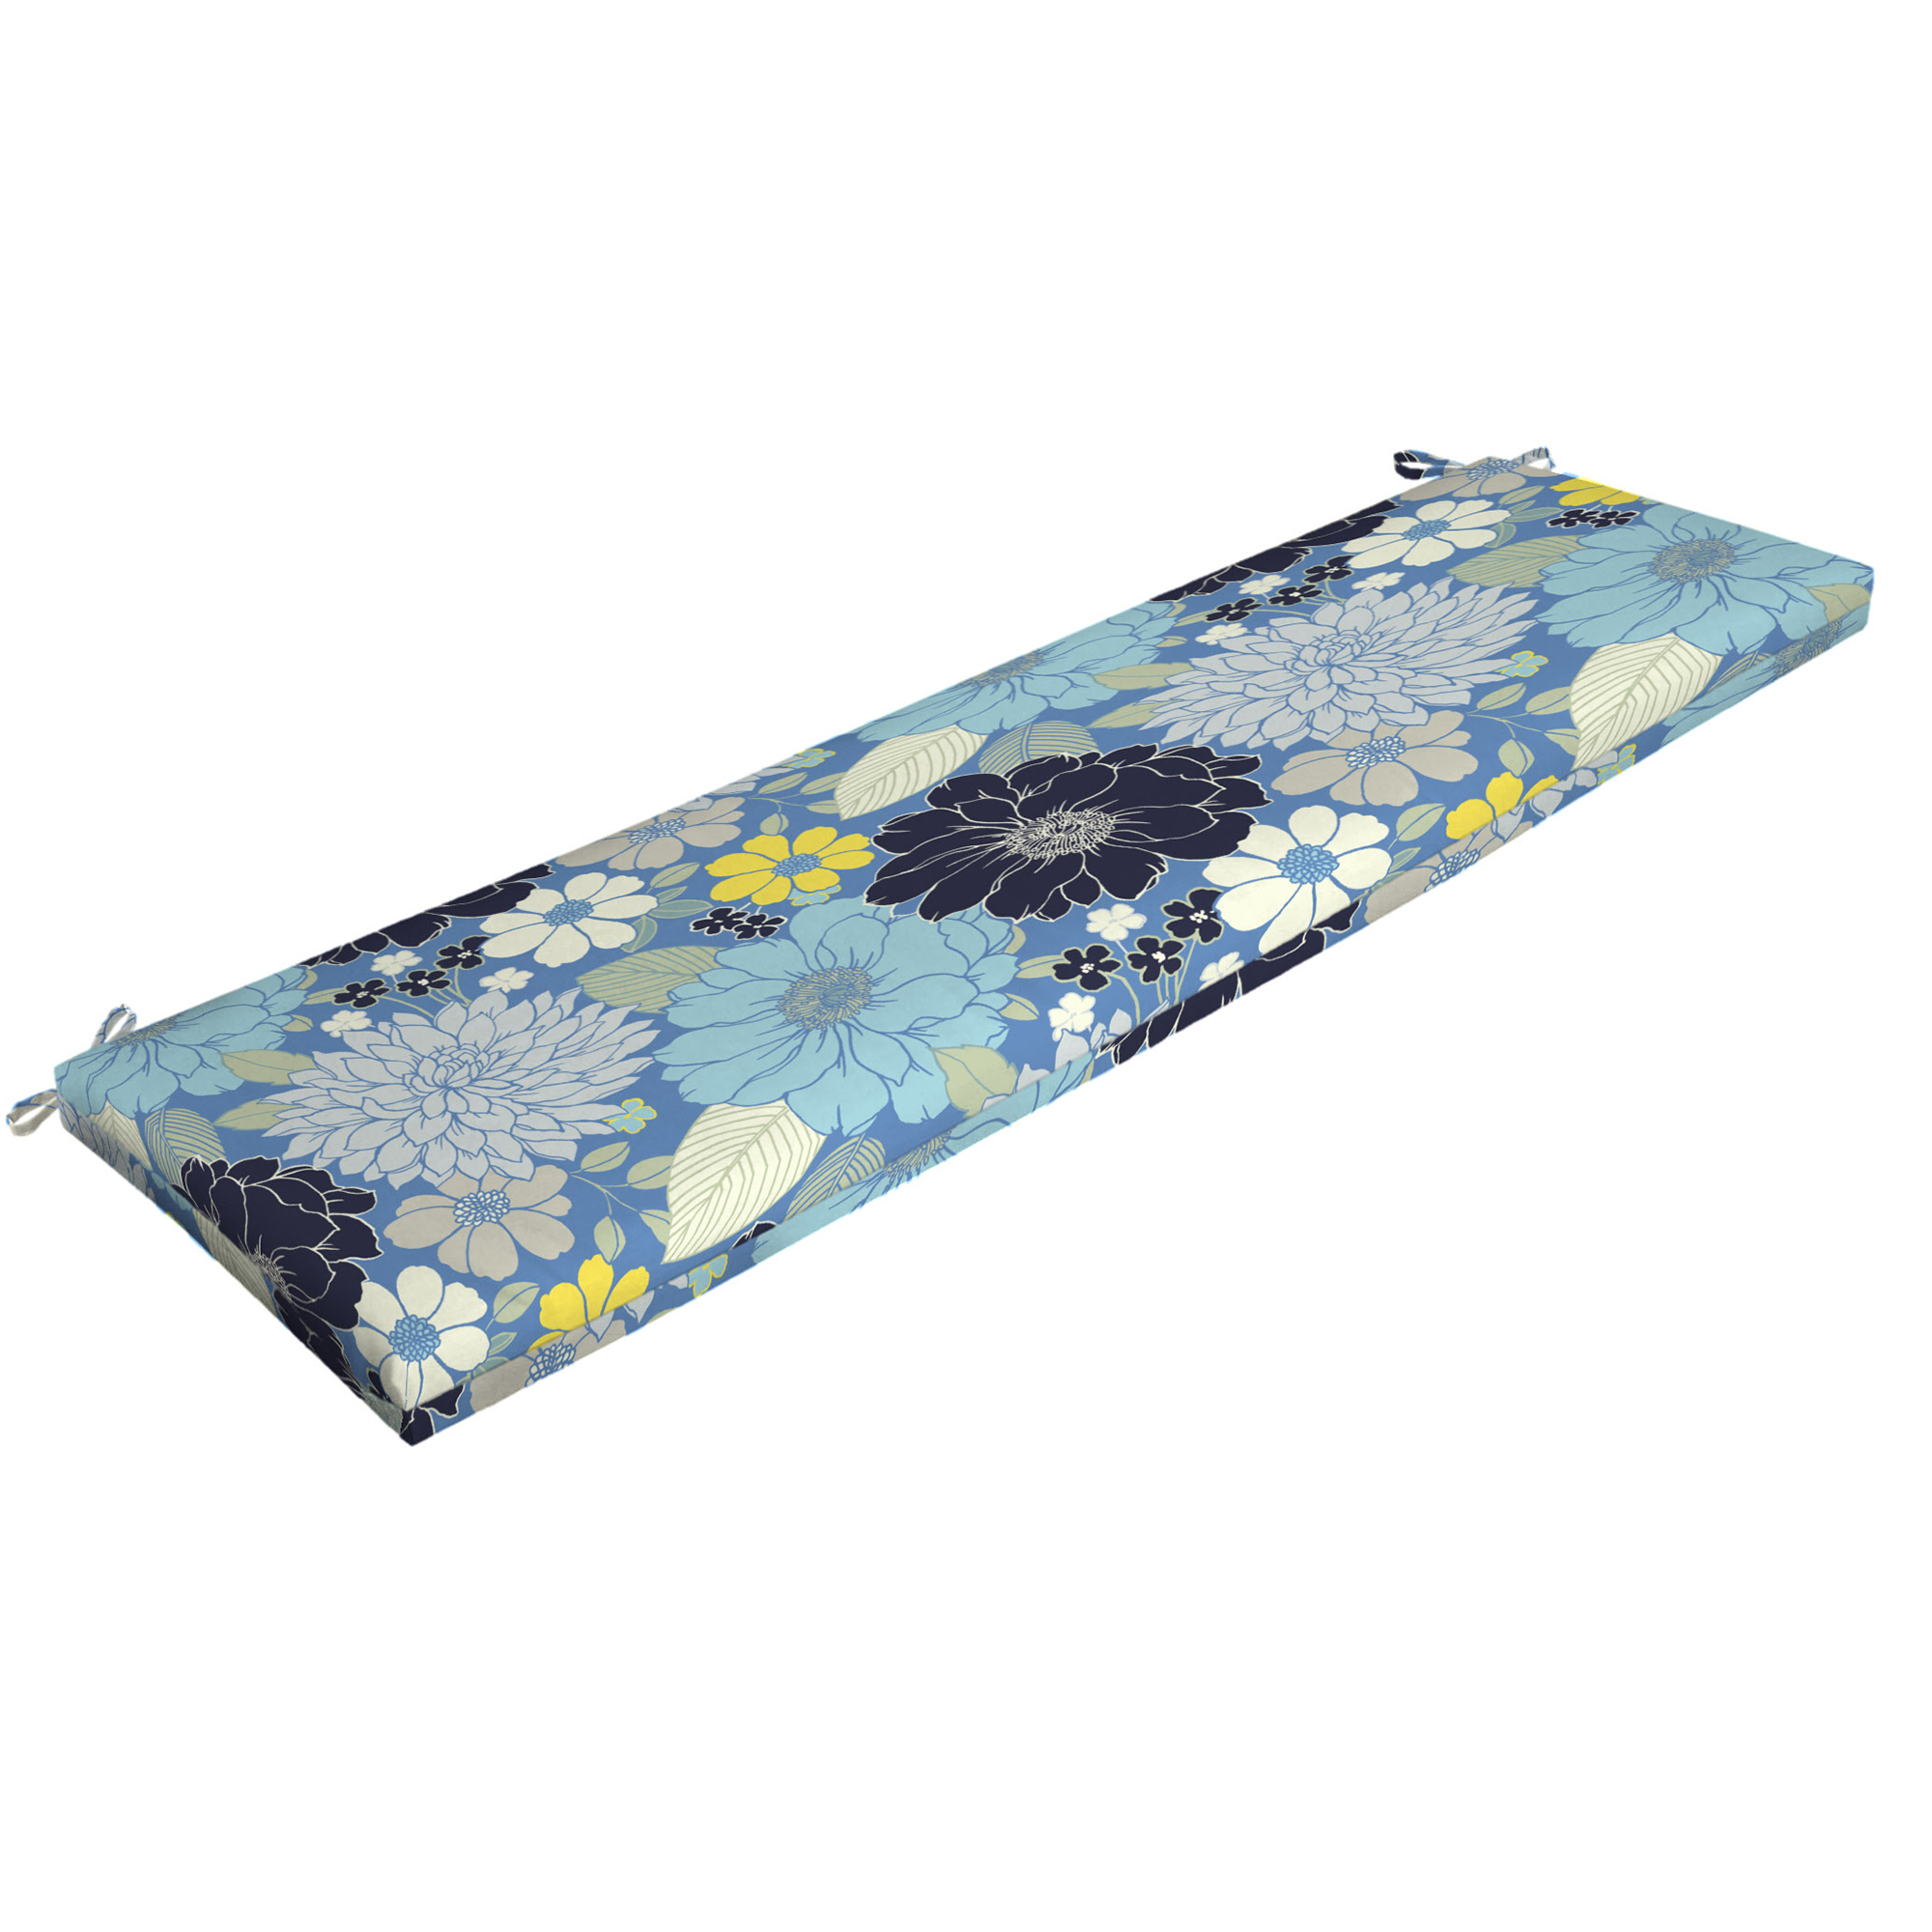 Mainstays Bell Gardens Floral Outdoor Patio Bench Cushion, 46 in. W x 17 in. D x 3 in. H